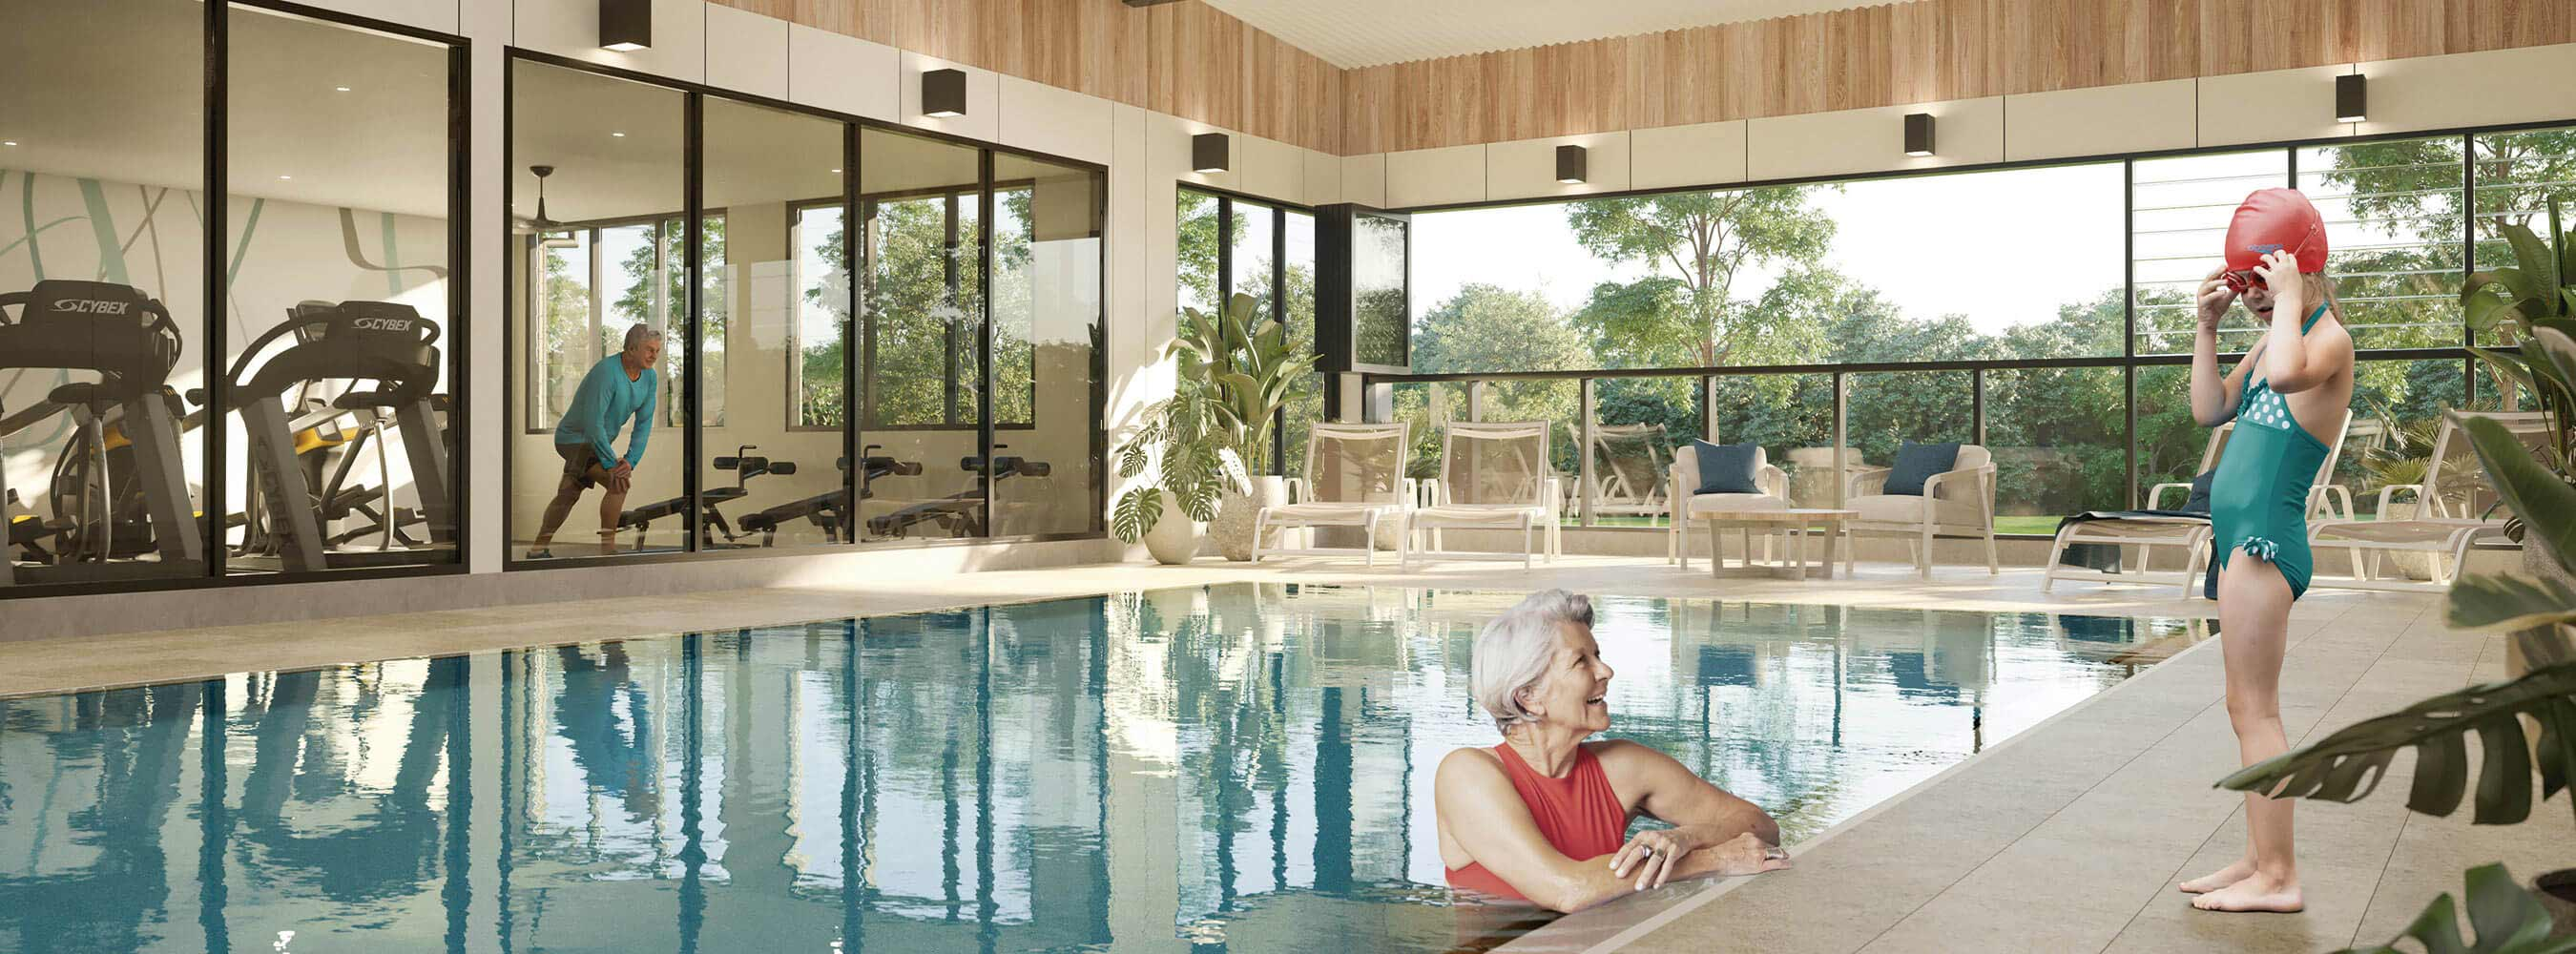 Enjoy a dip in the pool at the Blueheath Clubhouse in Medowie